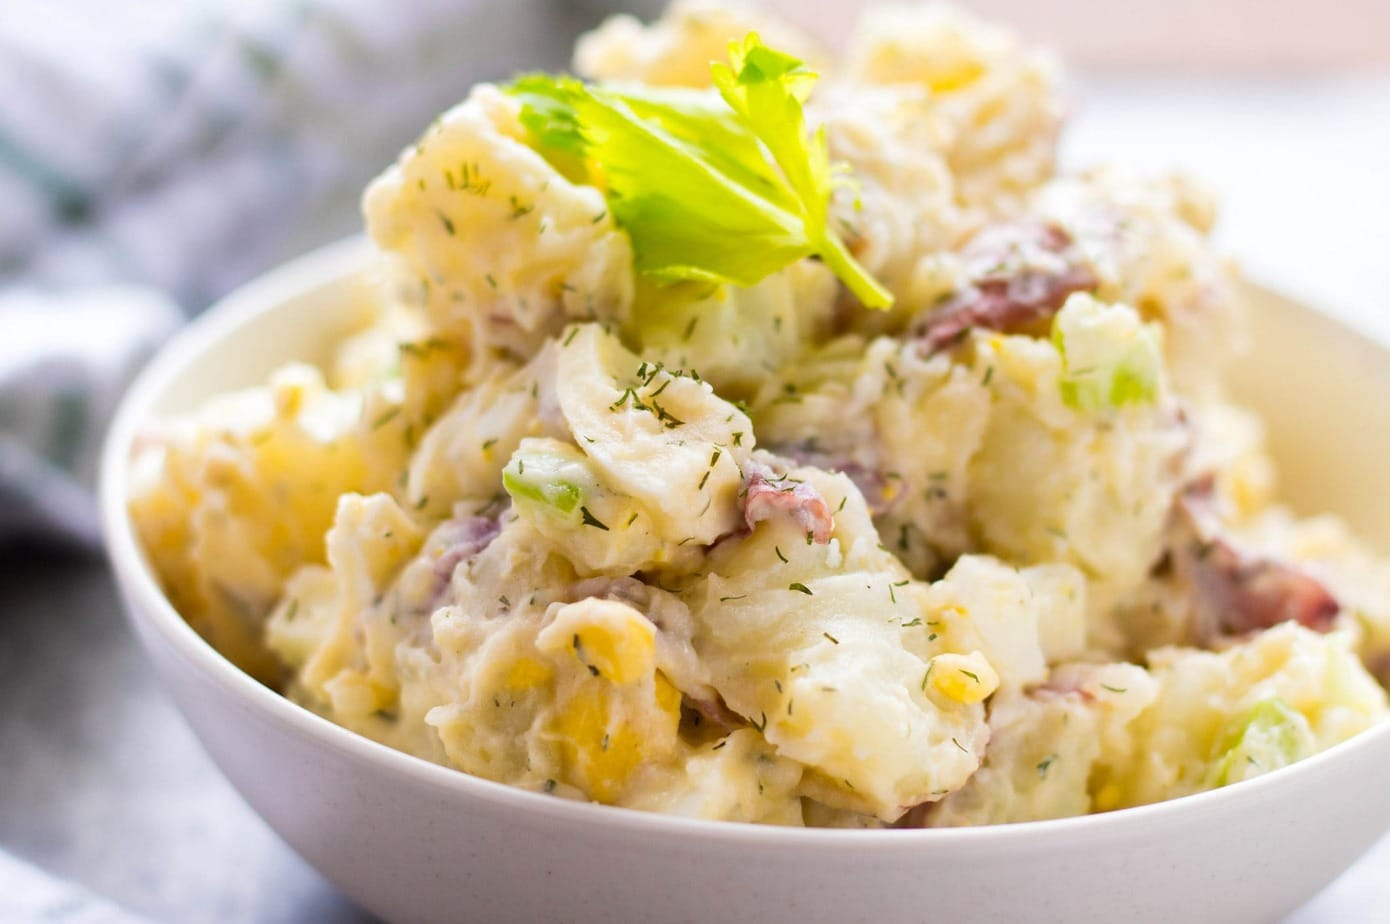 The Best Creamy Red Skin Dill Potato Salad recipe uses steamed potatoes for silky perfect potatoes every time. A great potluck potato salad for BBQs!